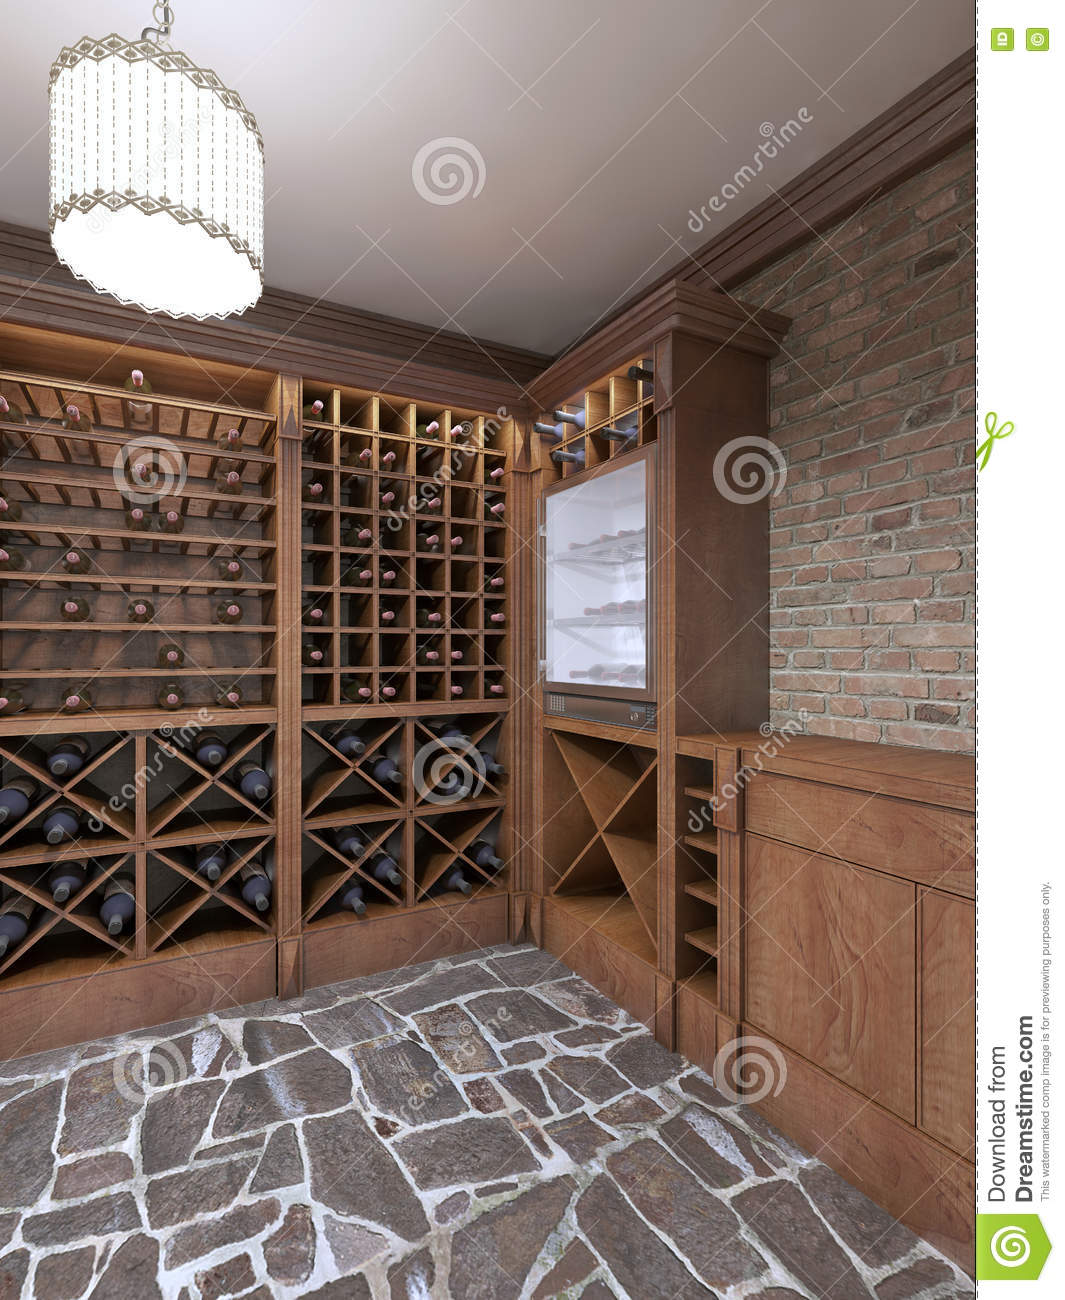 Wine Cellar In The Basement Of The House In A Rustic Style Stock Illustration Illustration Of Celebration Cellar 79486953